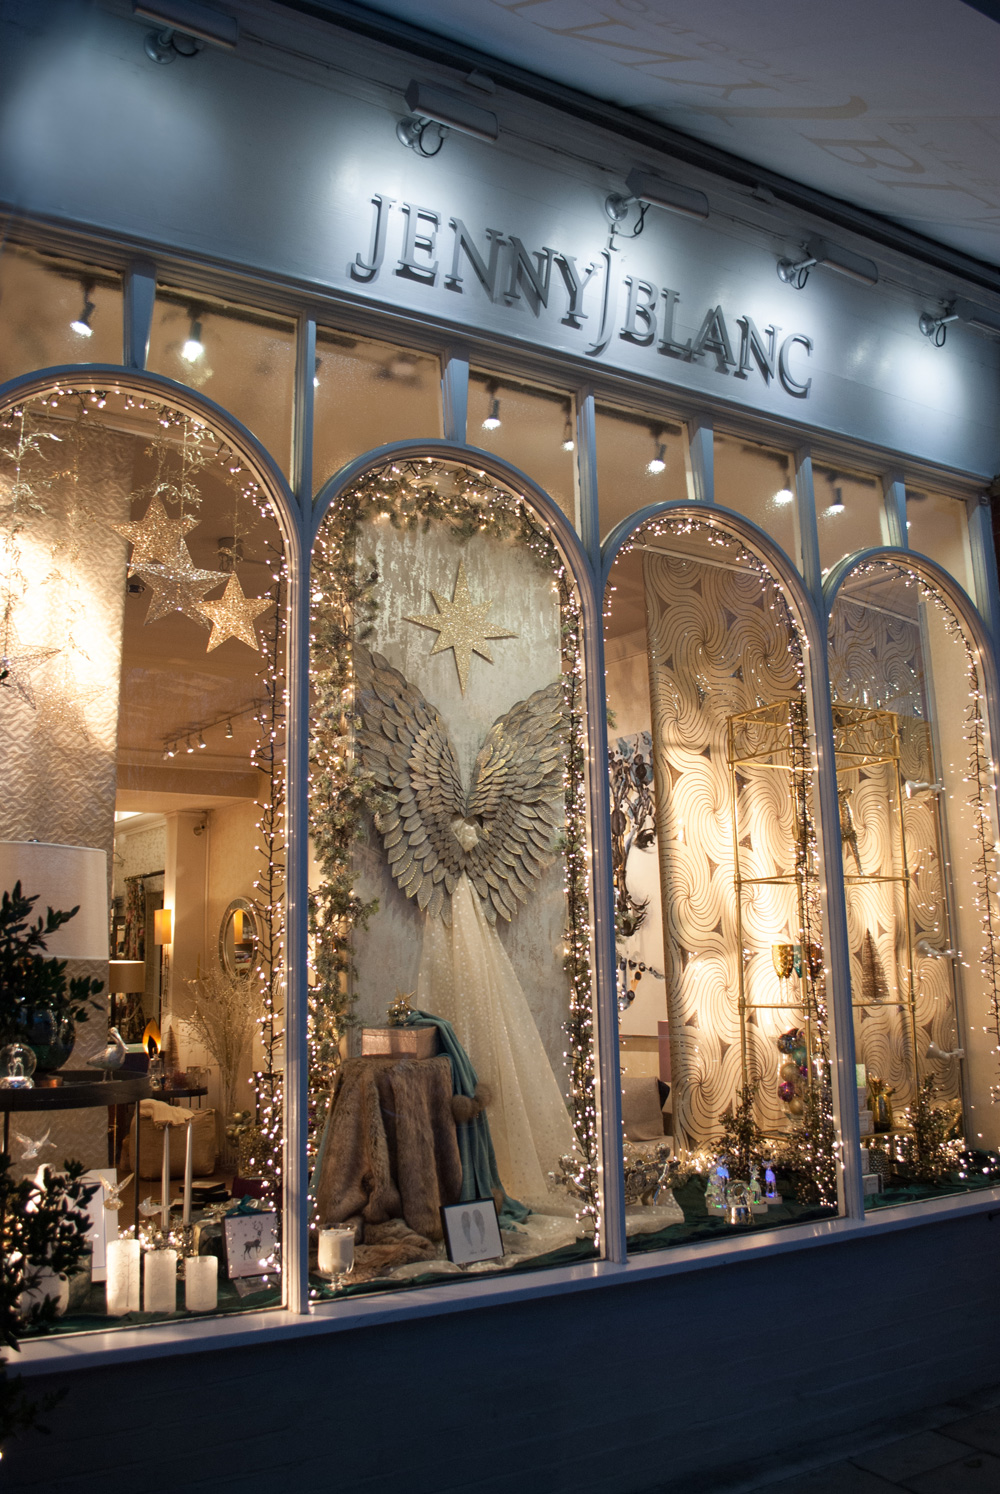 Jenny Blanc - London Showroom Christmas Window Display Image 3